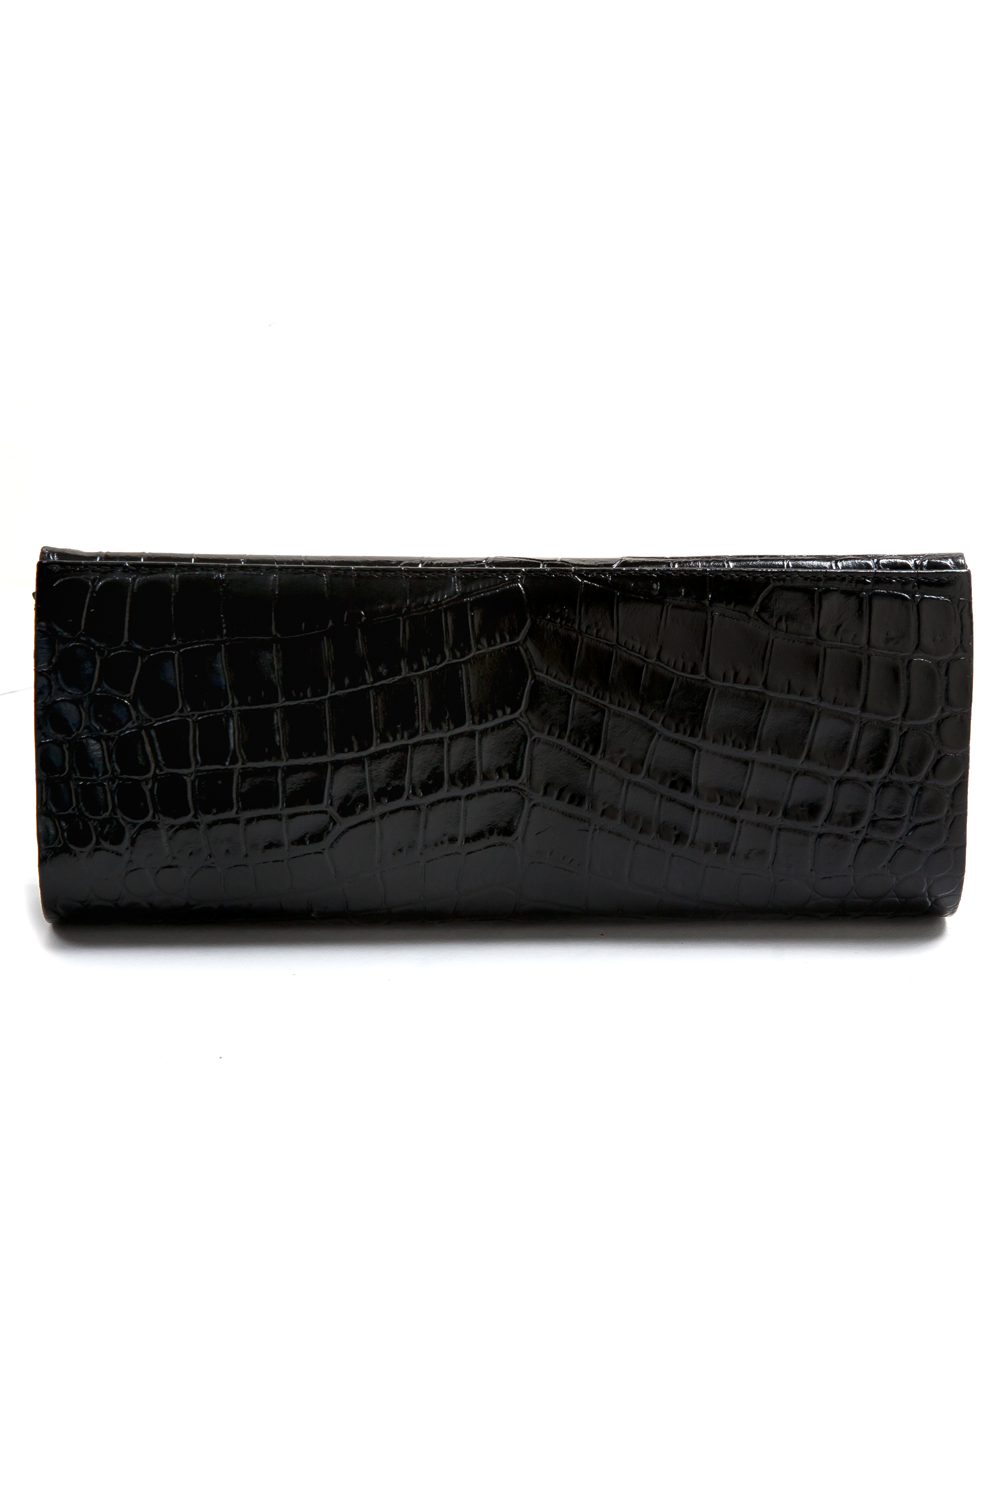 Mel Boteri | 'Audrey' Cocktail Clutch | Black, Croc-Effect Glazed Leather | Back